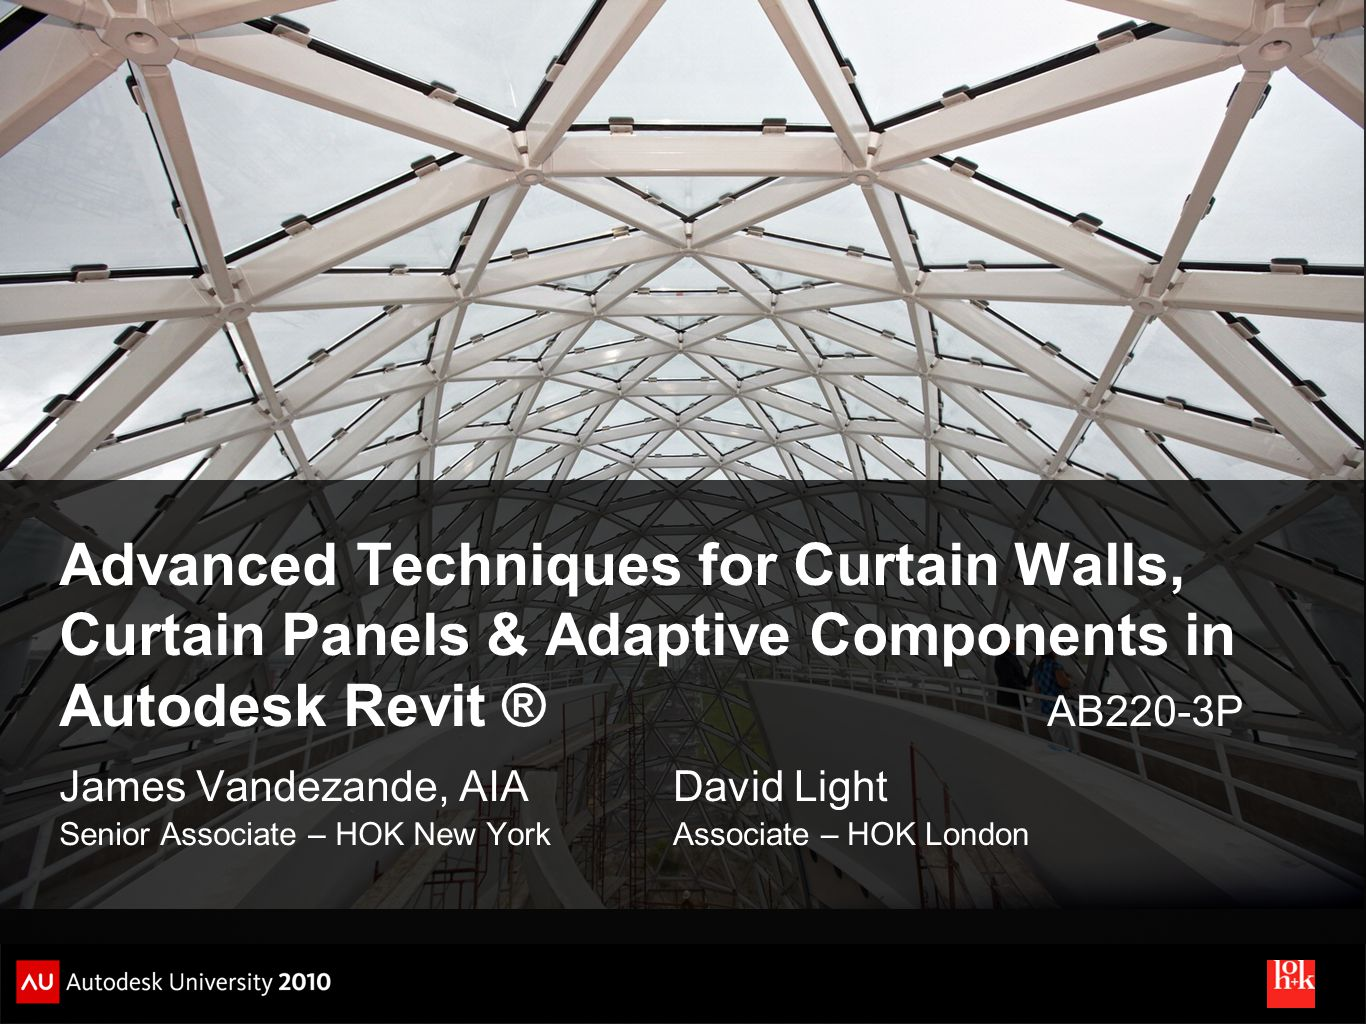 Advanced Techniques for Curtain Walls, Curtain Panels & Adaptive Components in Autodesk Revit ® AB220-3P James Vandezande, AIA Senior Associate – HOK New York David Light Associate – HOK London